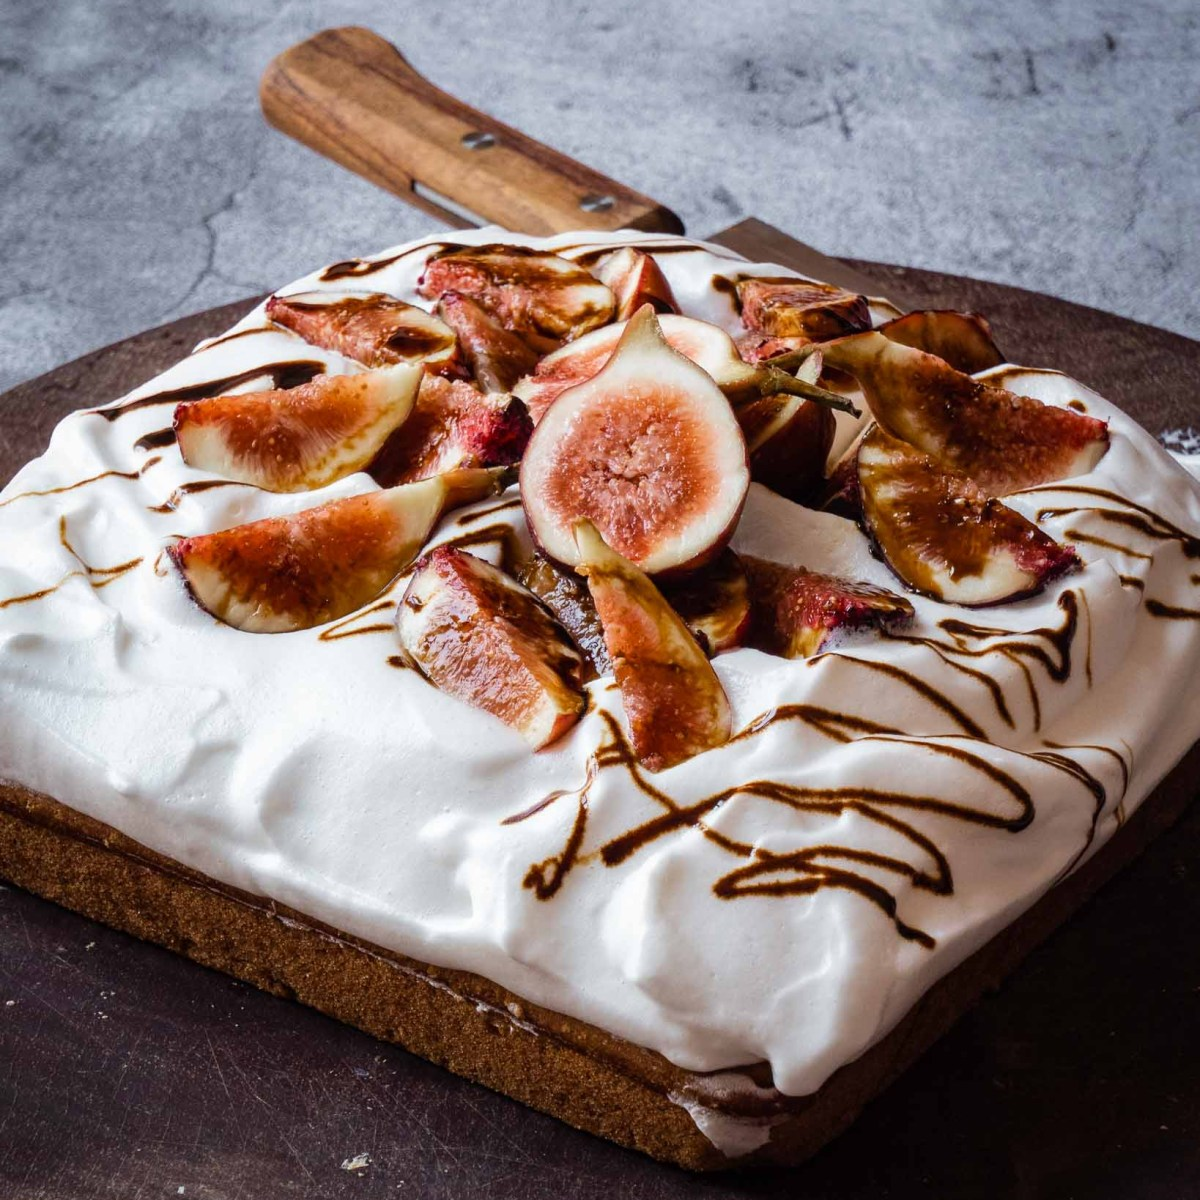 square shaped olive oil cake topped with aquafaba vegan cream frosting, fresh figs and date syrup on dark wood board on stone table